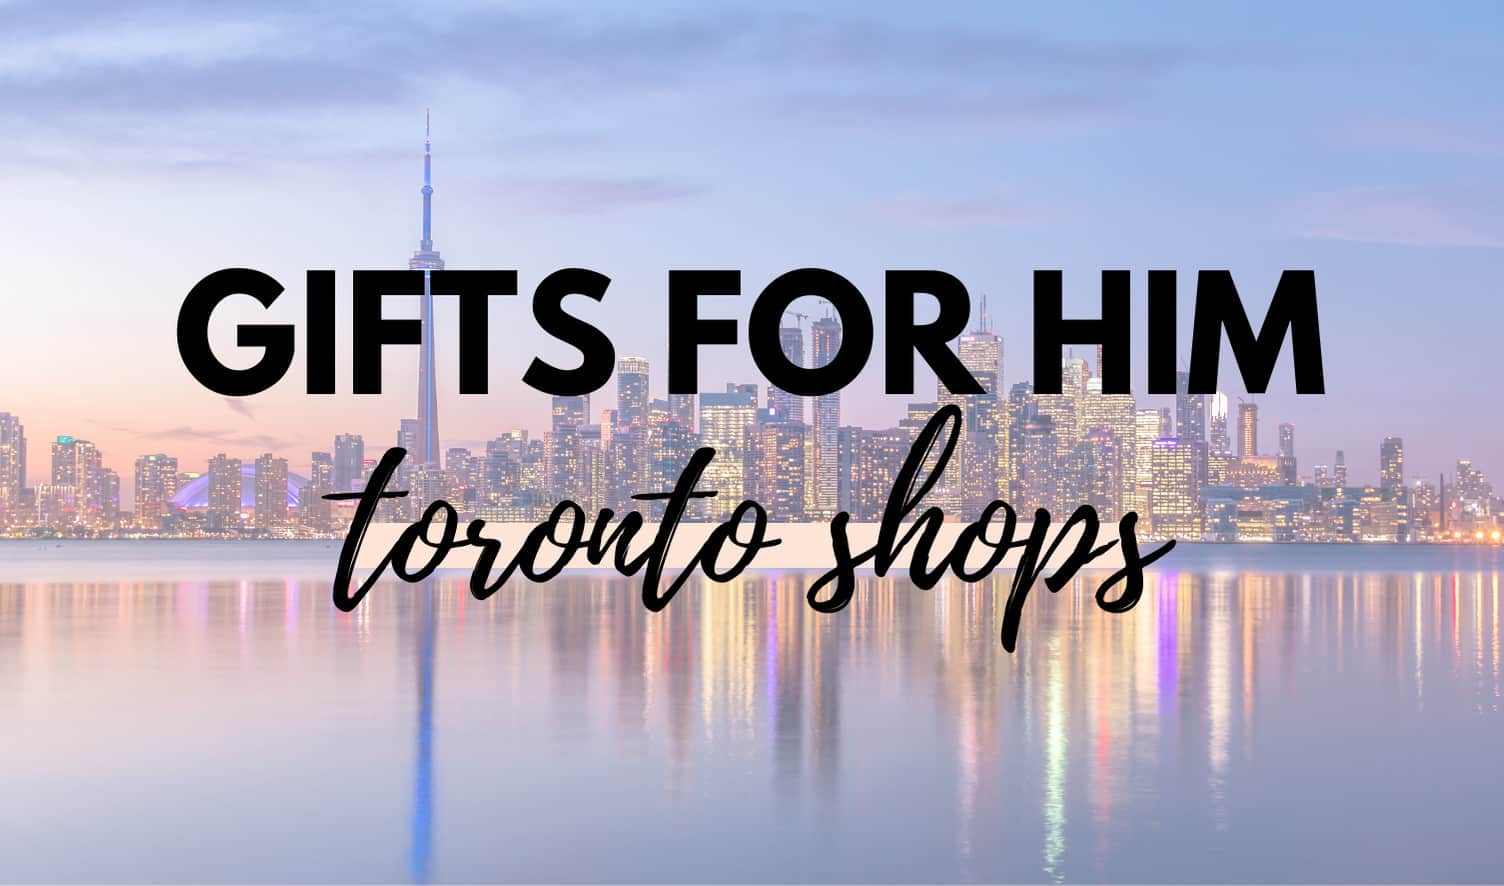 Gift For Him From Local Toronto Shops